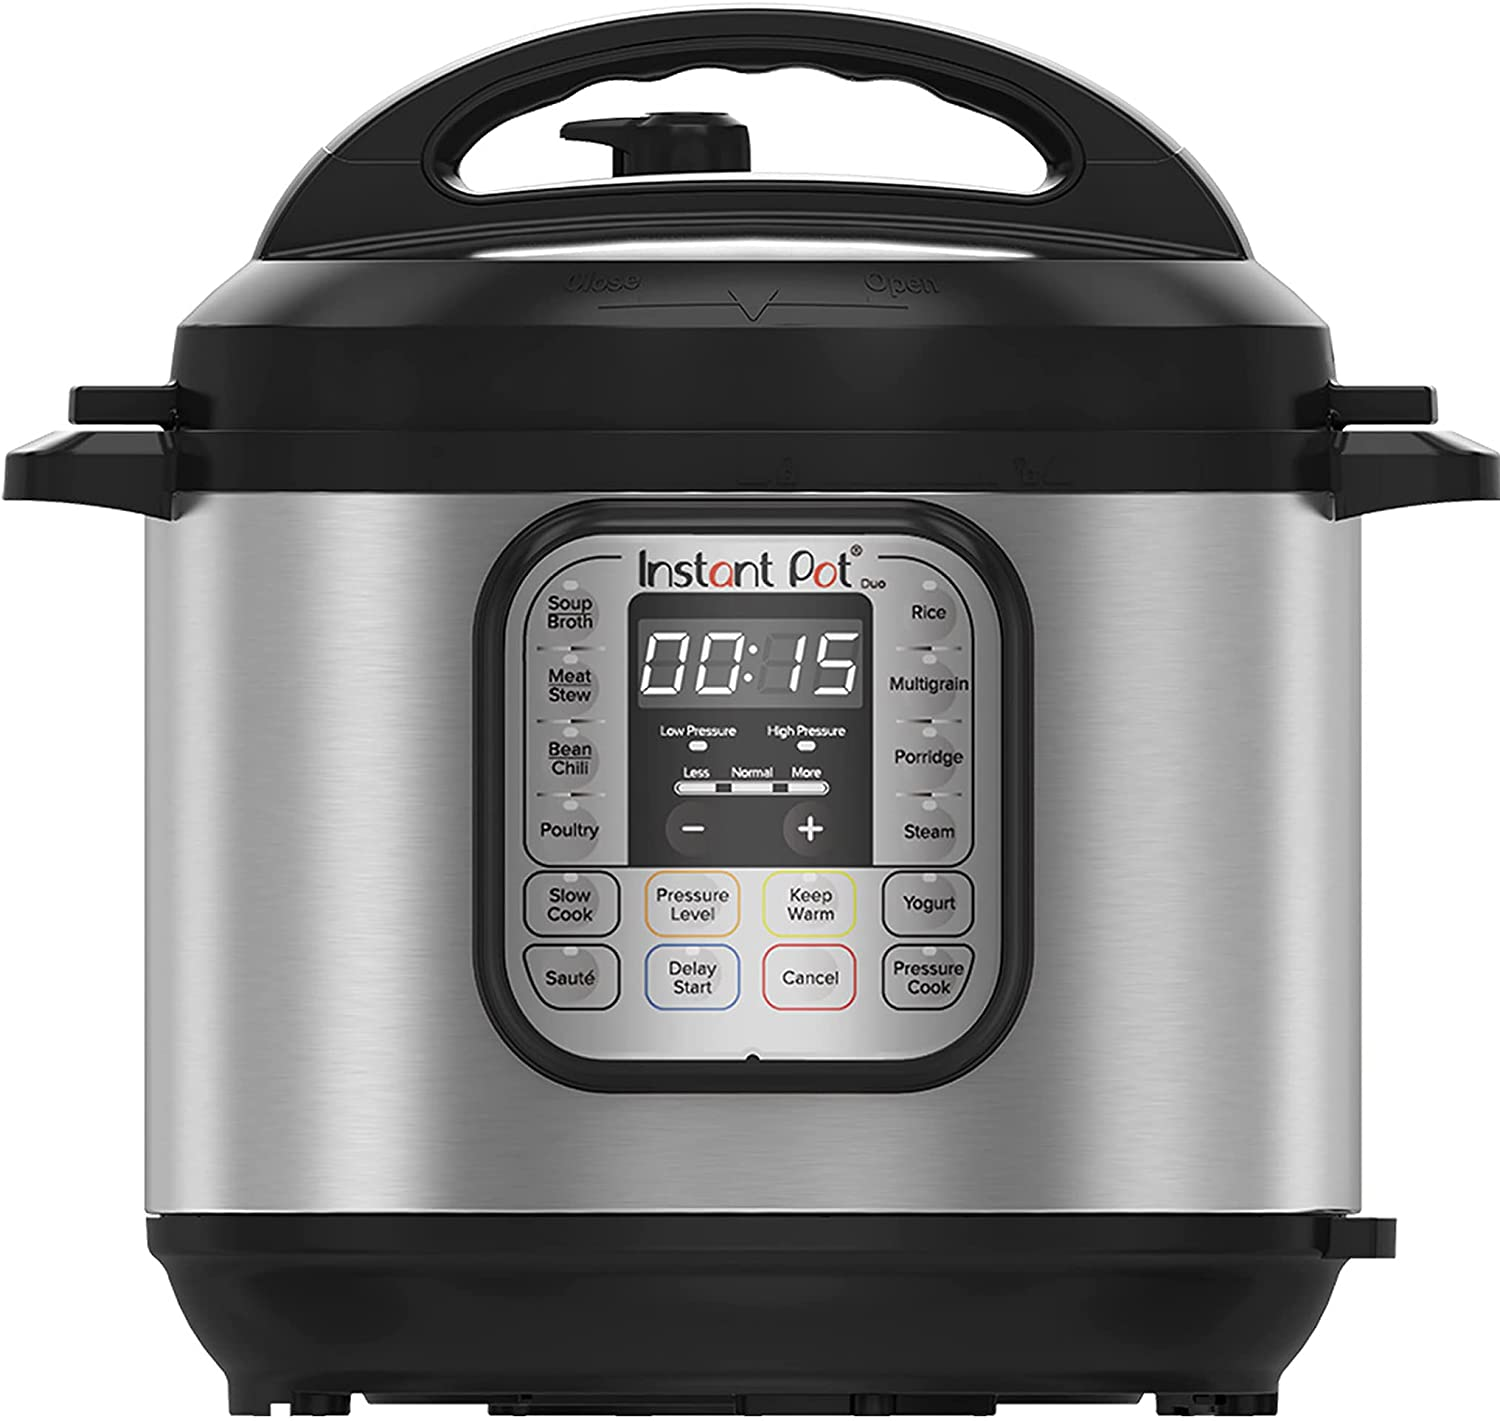 Instant Pot Duo 7-in-1 Electric Pressure Cooker, Slow Cooker, Rice Cooker, Steamer, Saute, Yogurt Maker, Sterilizer, and Warmer, 6 Quart, 14 One-Touch Programs